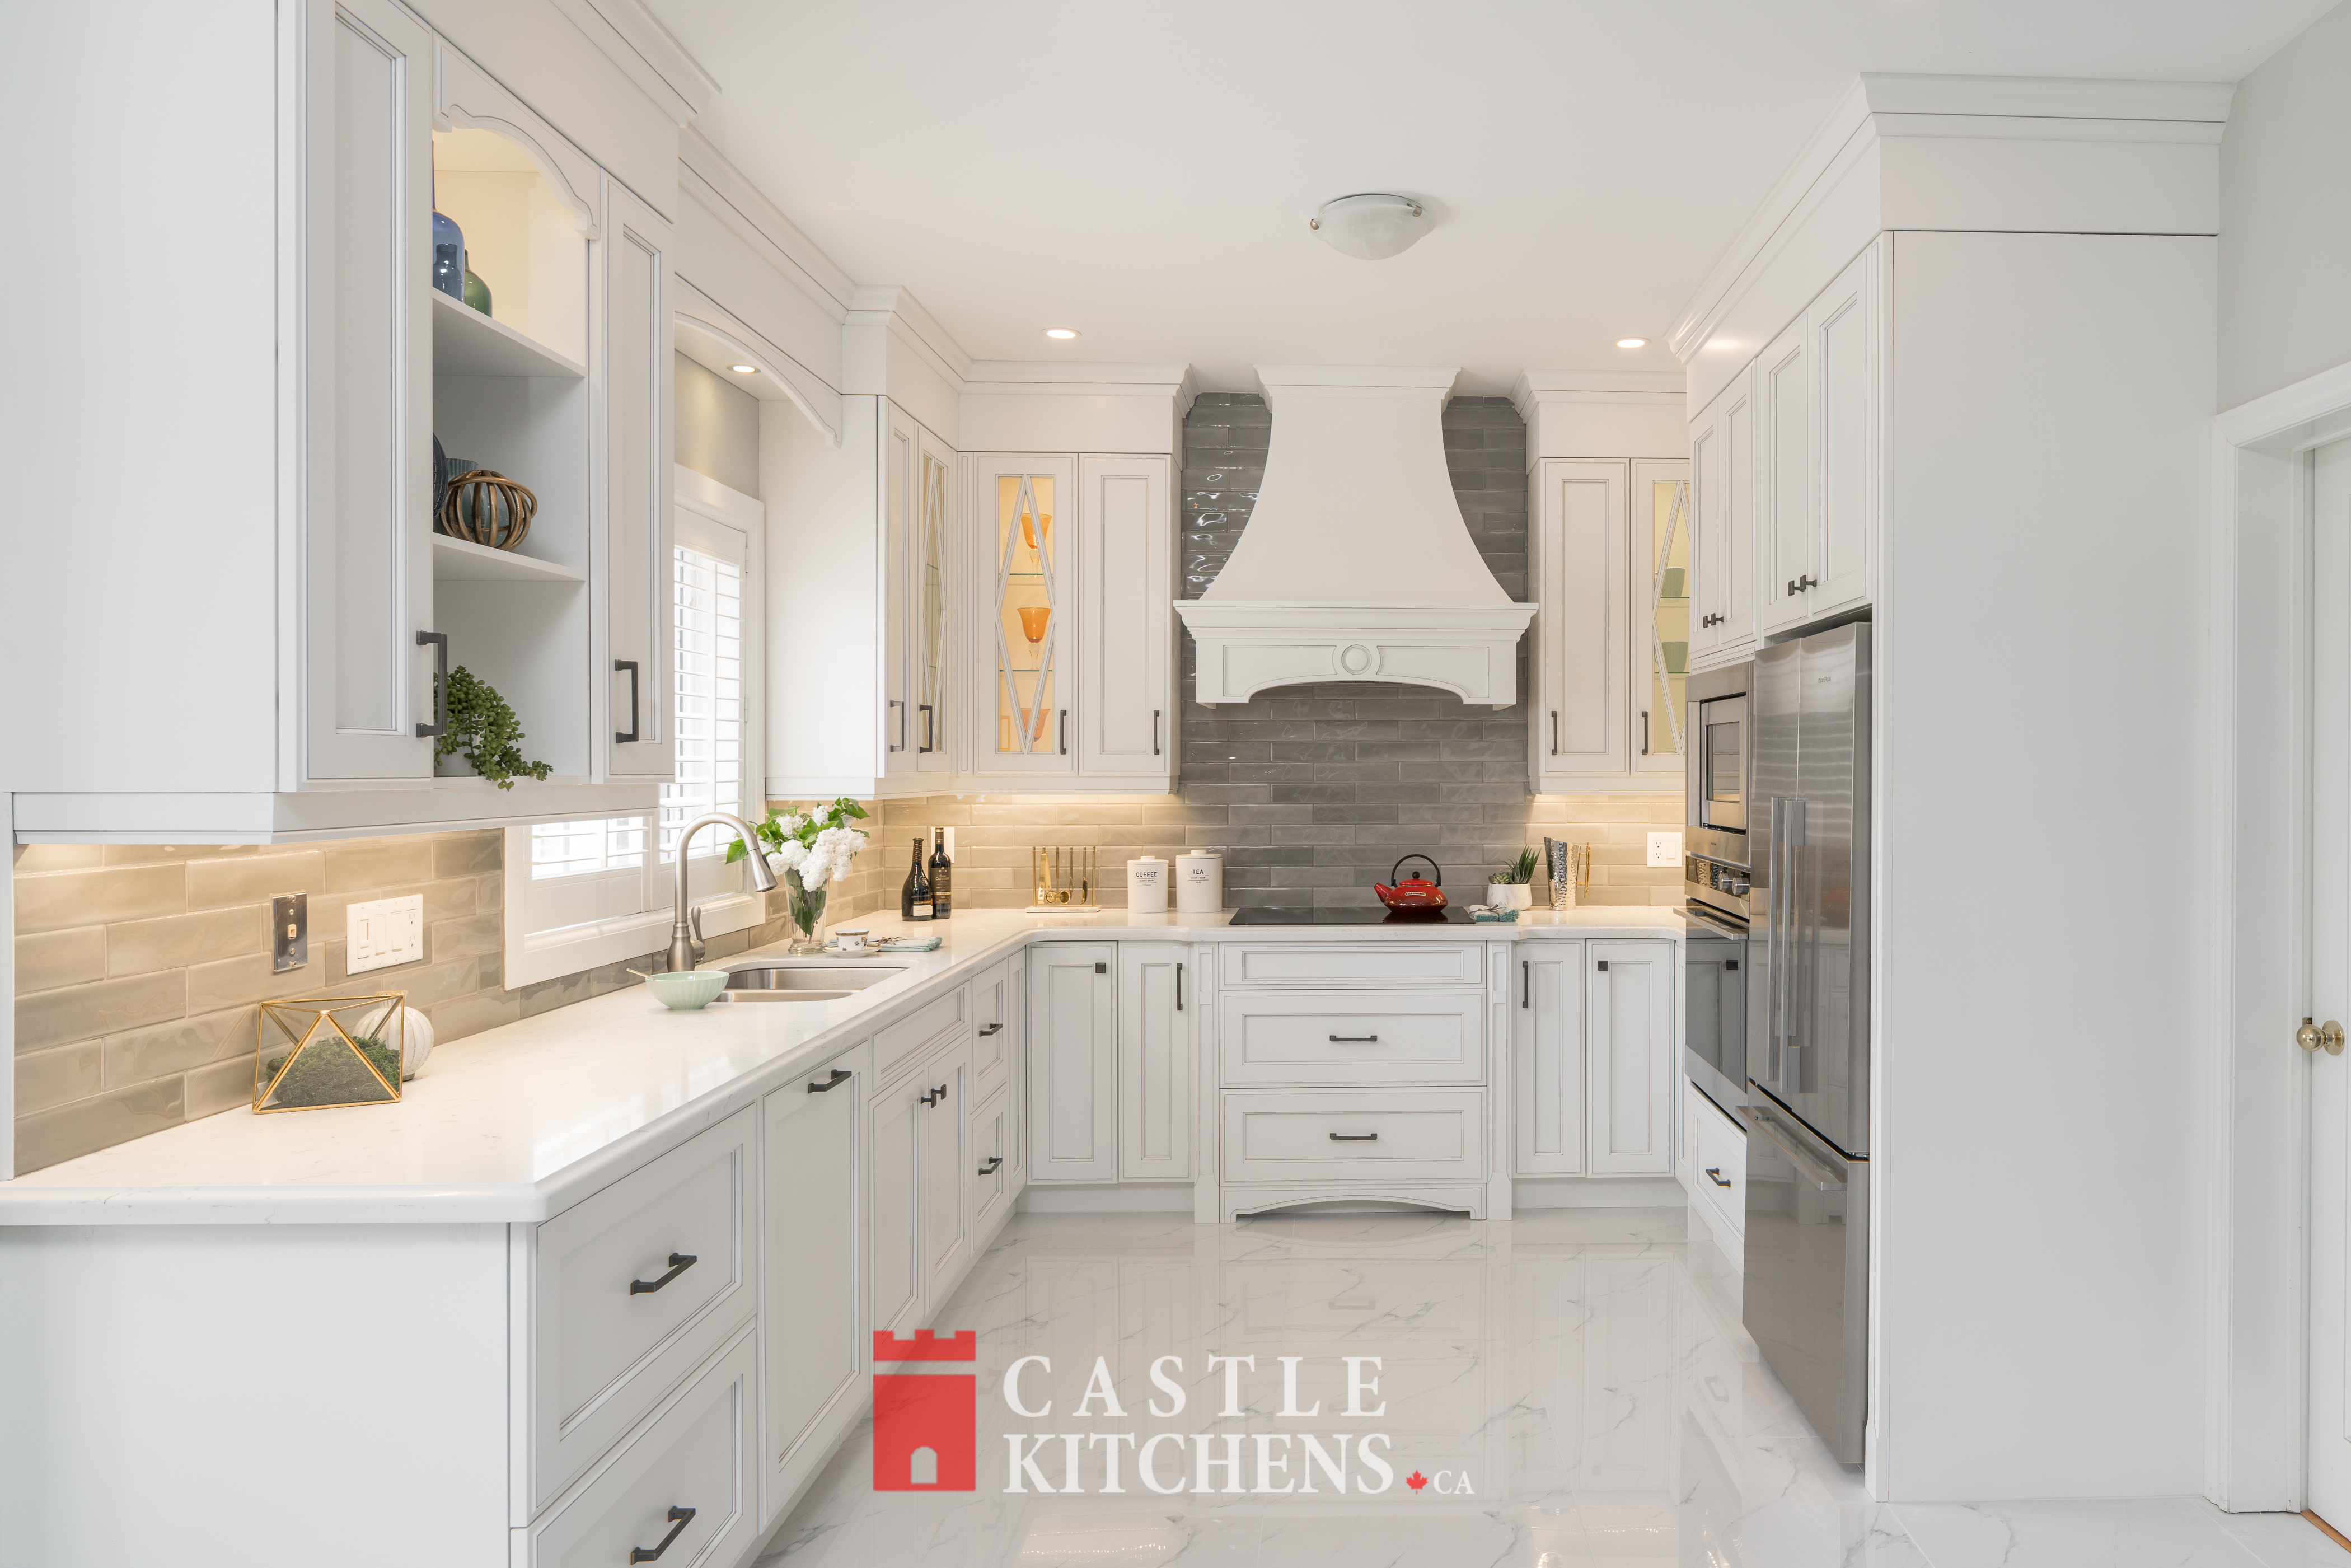 custom kitchen cabinetry knobs and pulls for cabinets in toronto castle kitchens